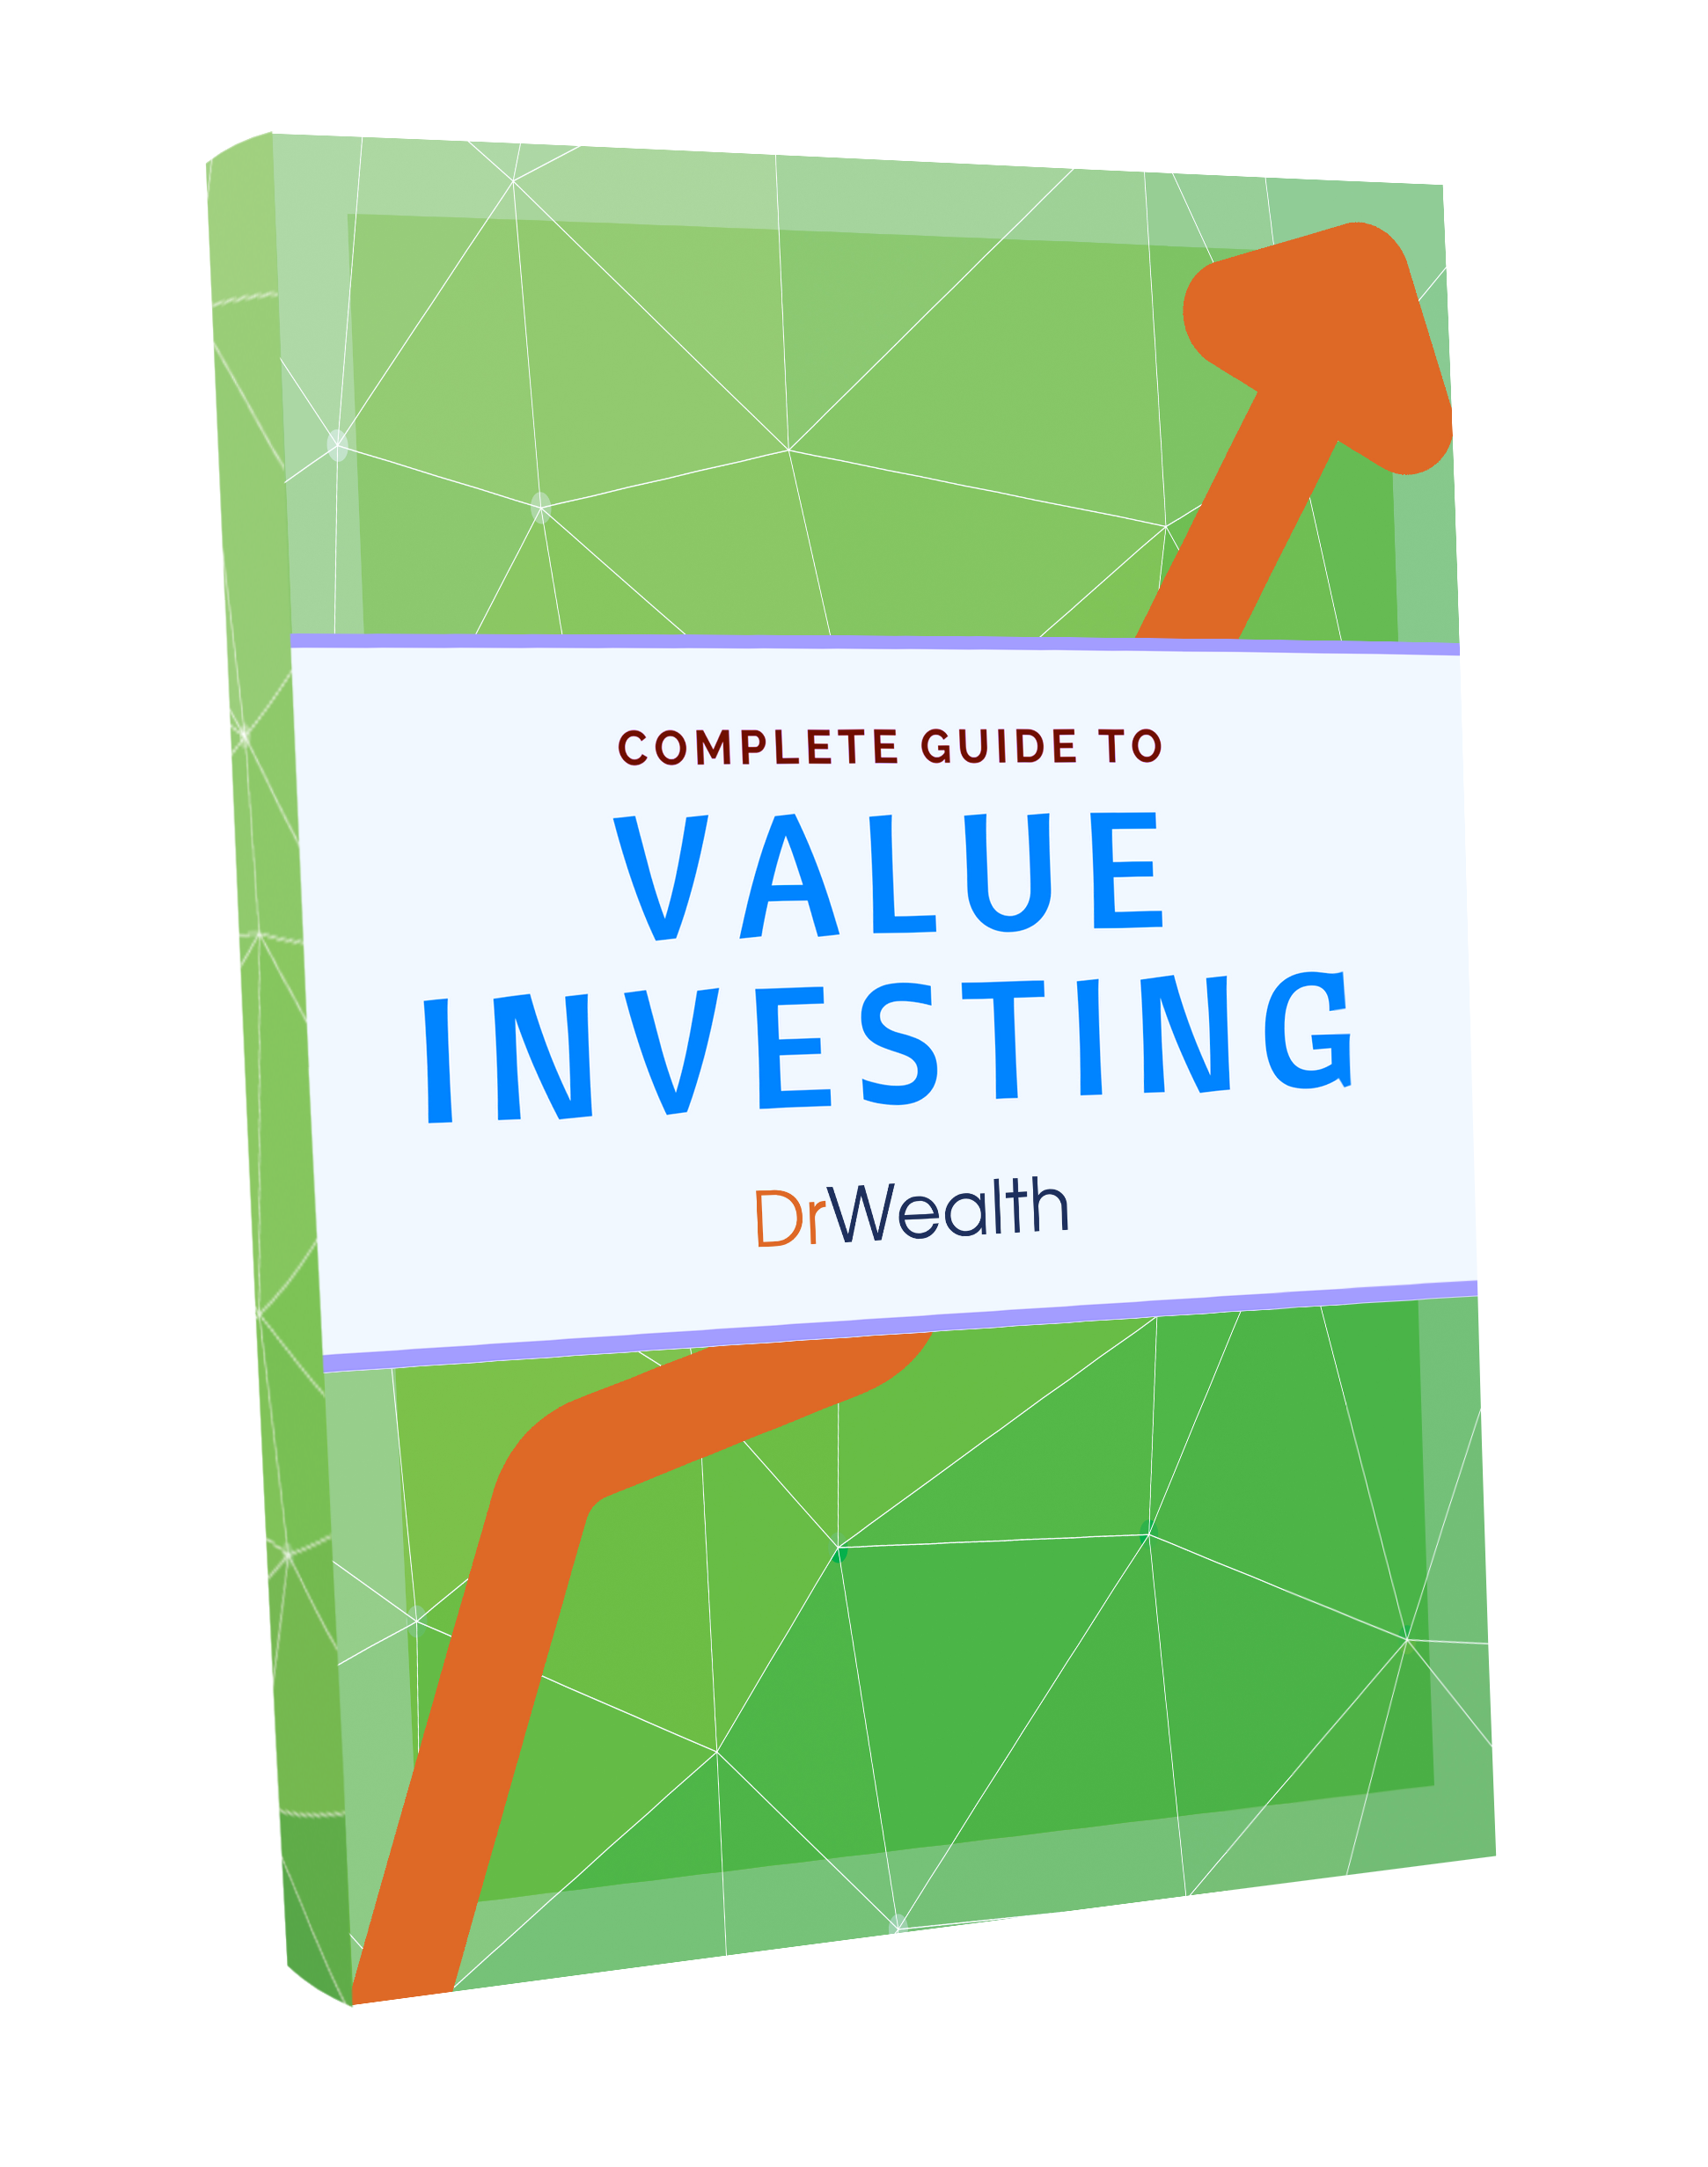 Complete Guide to Value Investing